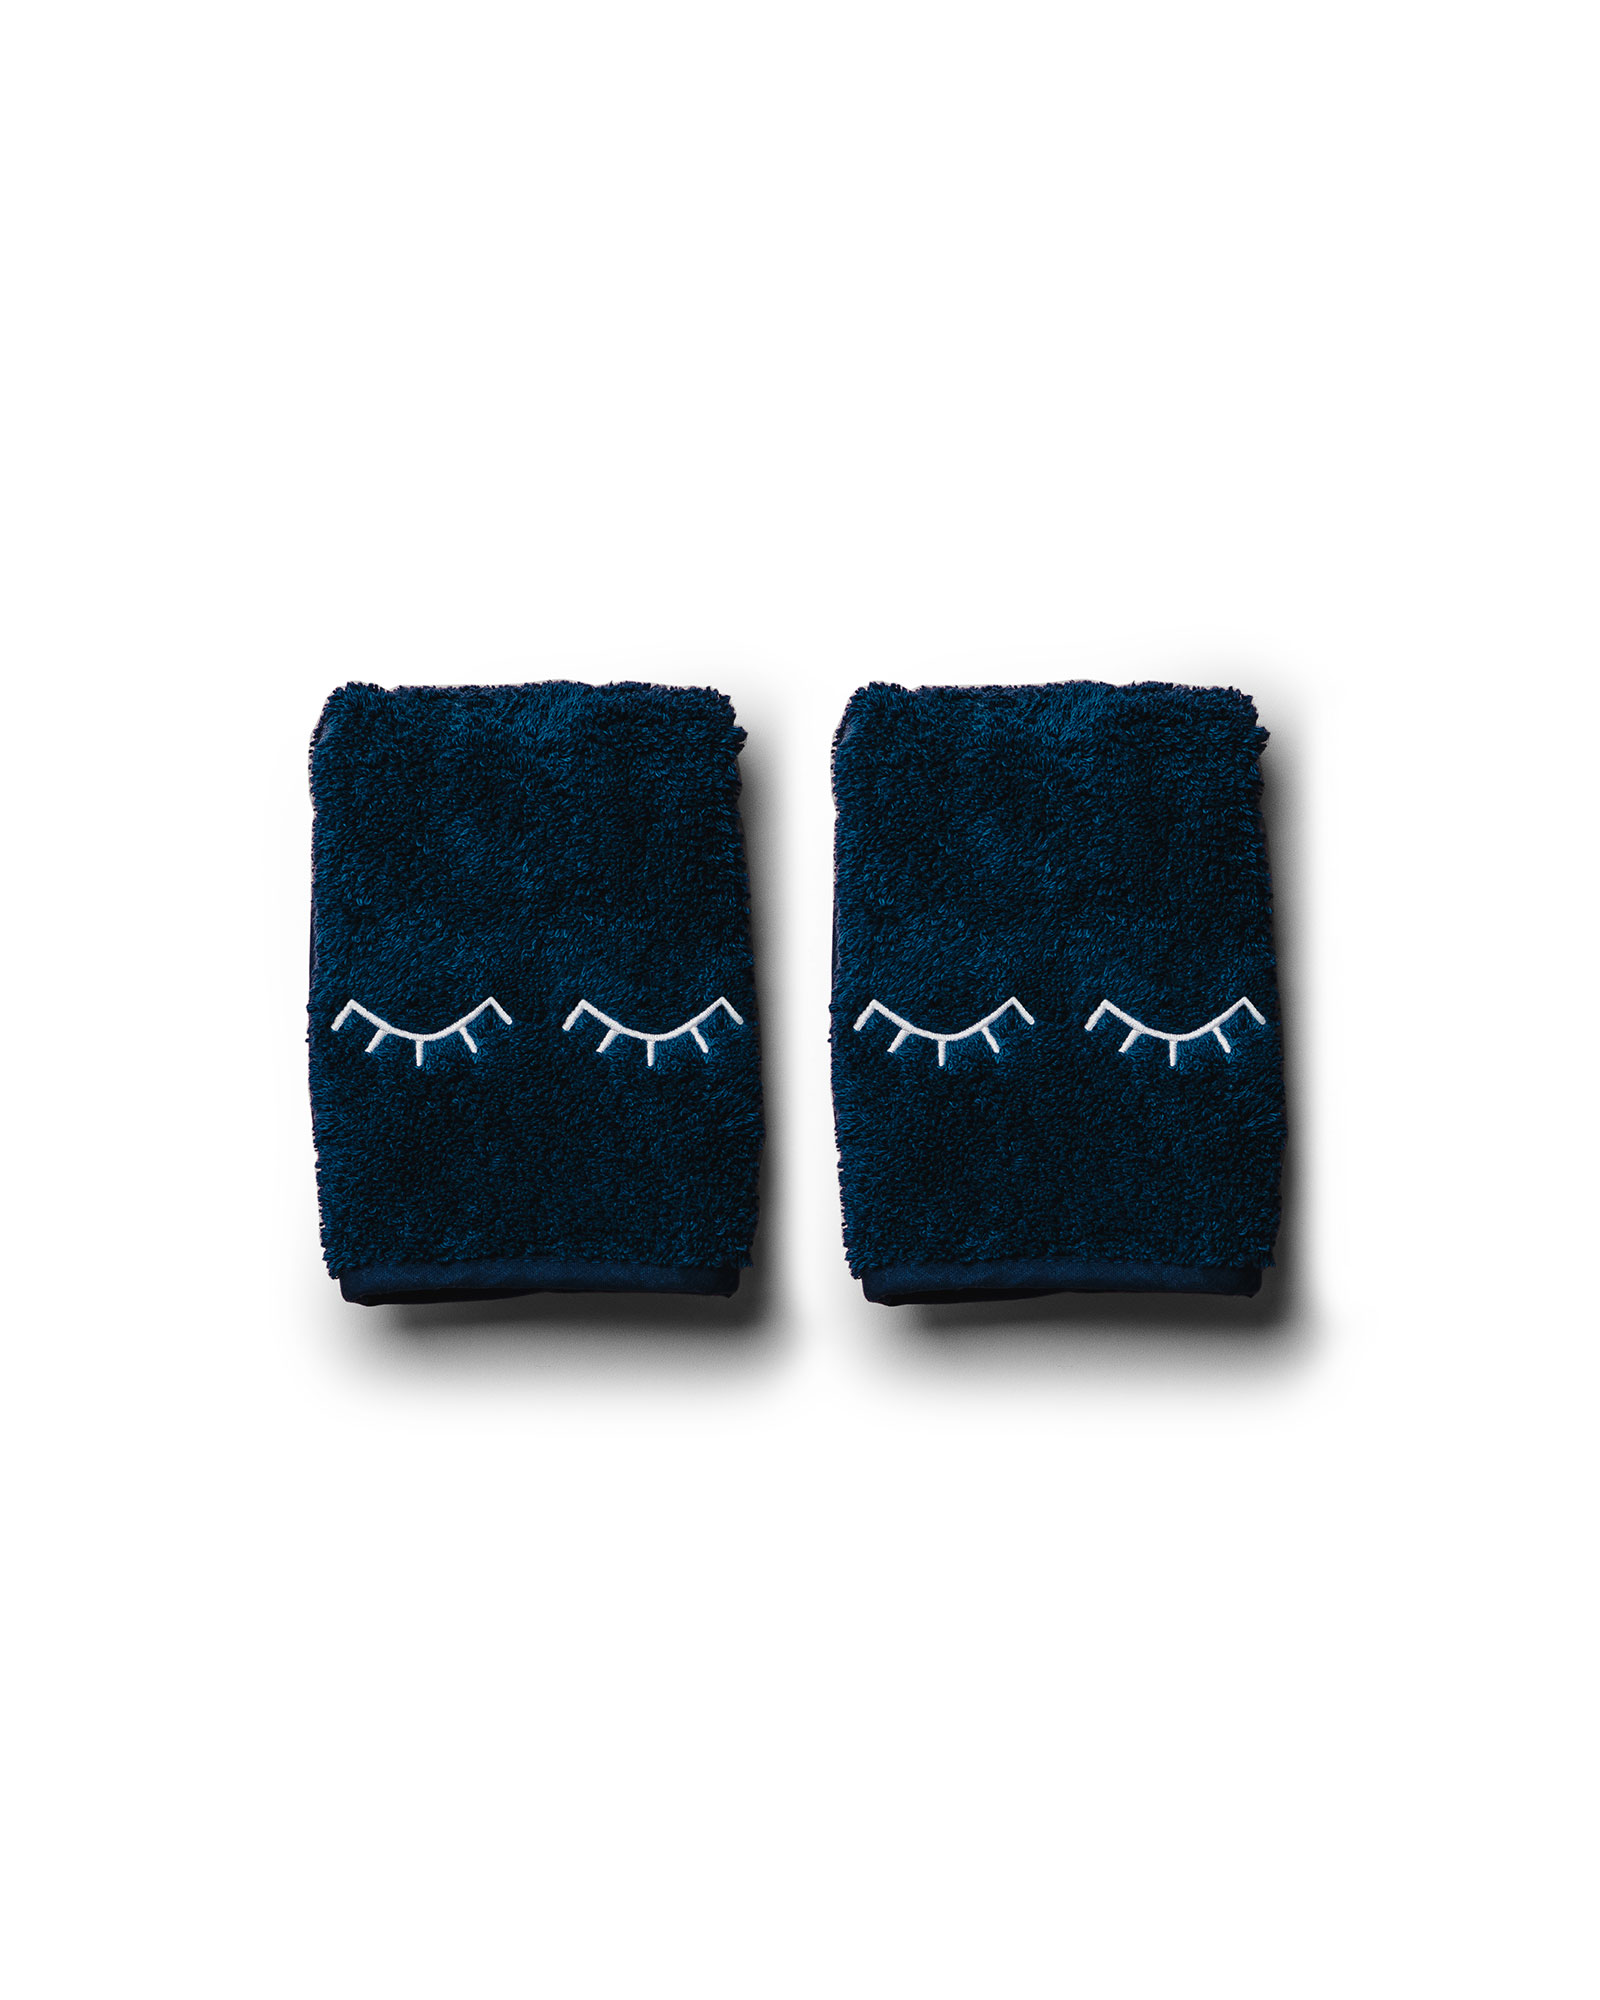 hostess-gift-guide-2019-weezie-towels